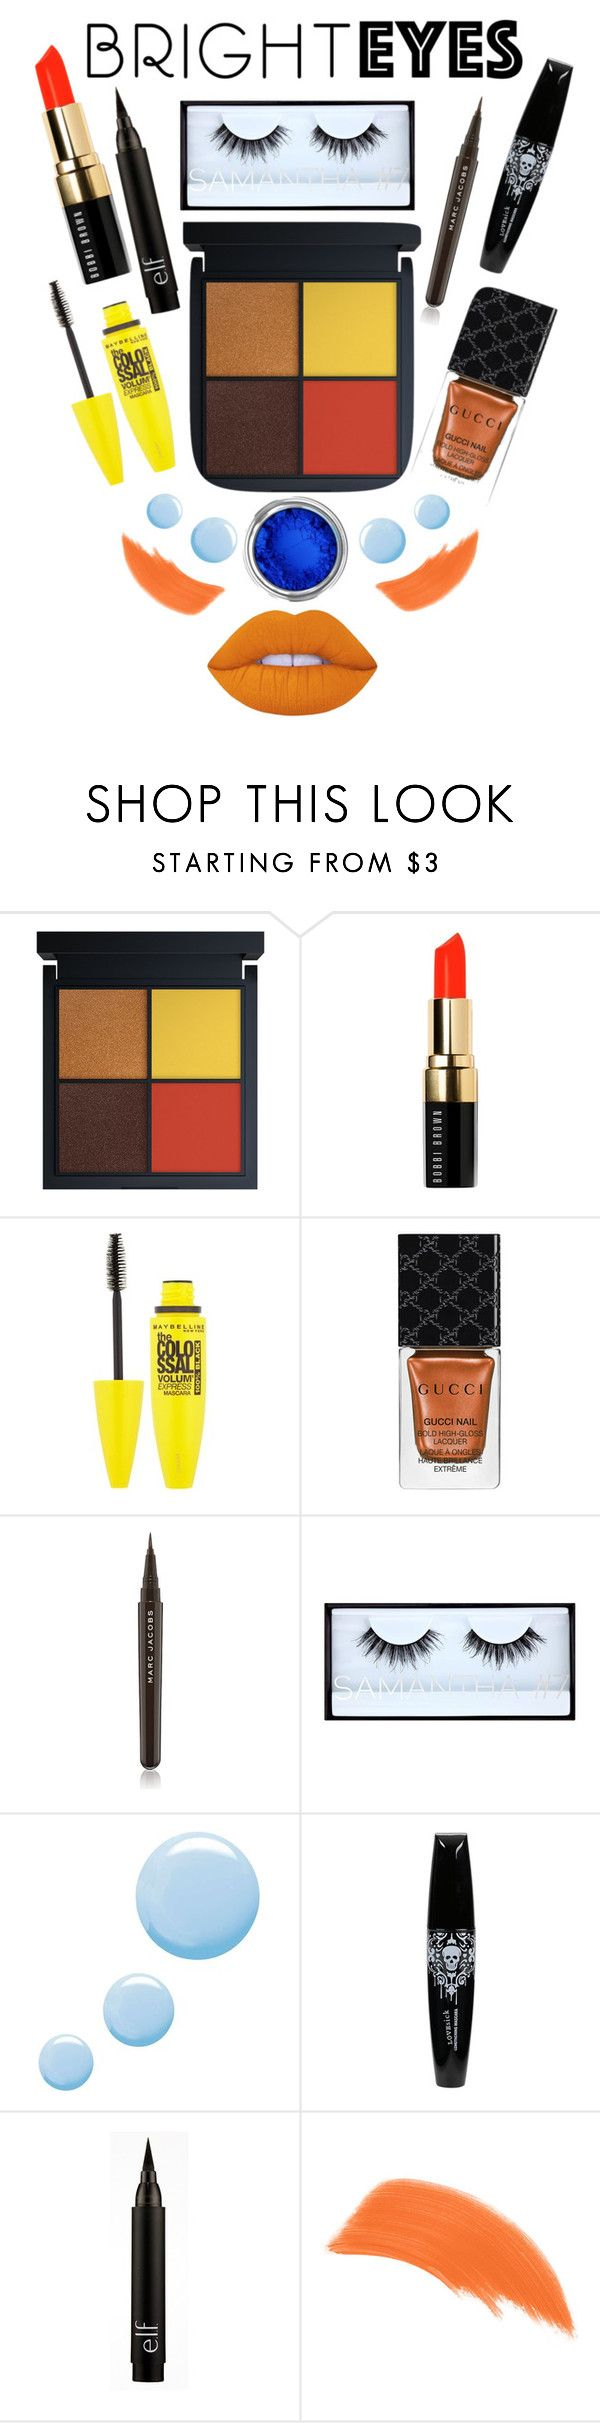 """Bright Eyes "" by stylebycharlene on Polyvore featuring beauty, Bobbi Brown Cosmetics, Maybelline, Gucci, Marc Jacobs, Huda Beauty, Topshop, By Terry, Lime Crime and Beauty"